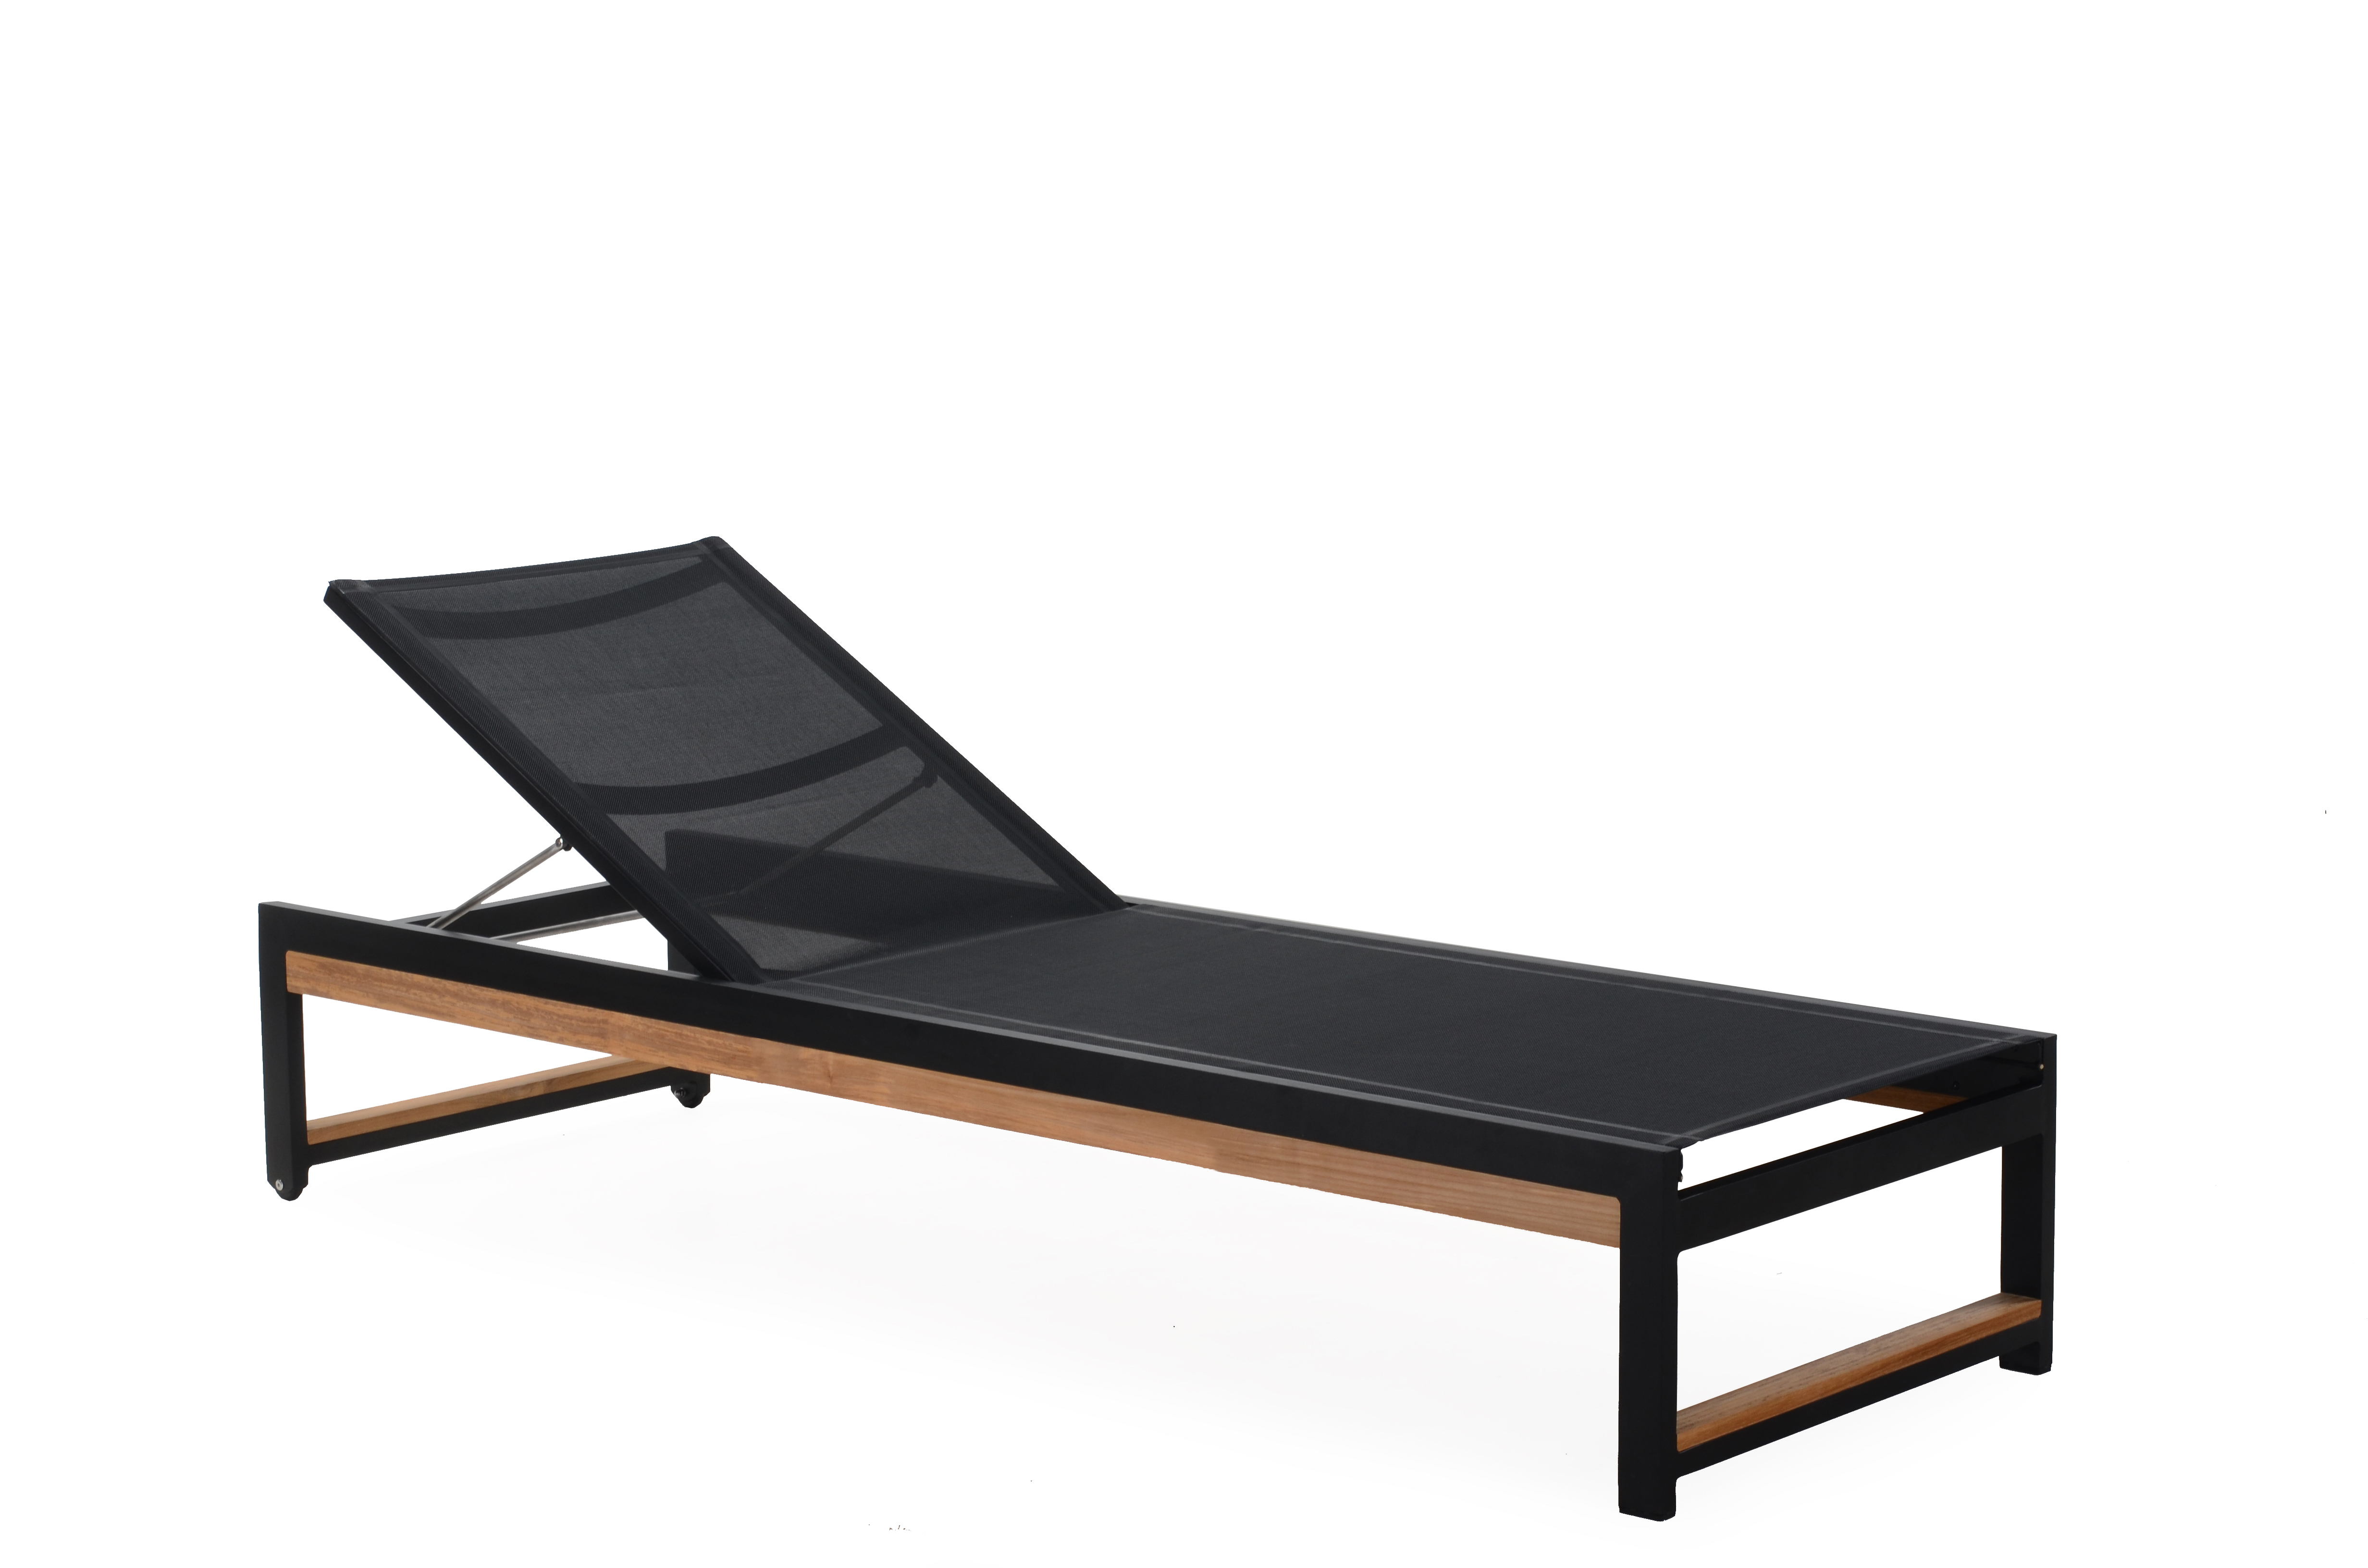 Alar chaise lounger stellar couture outdoor for Aurore luxury chaise